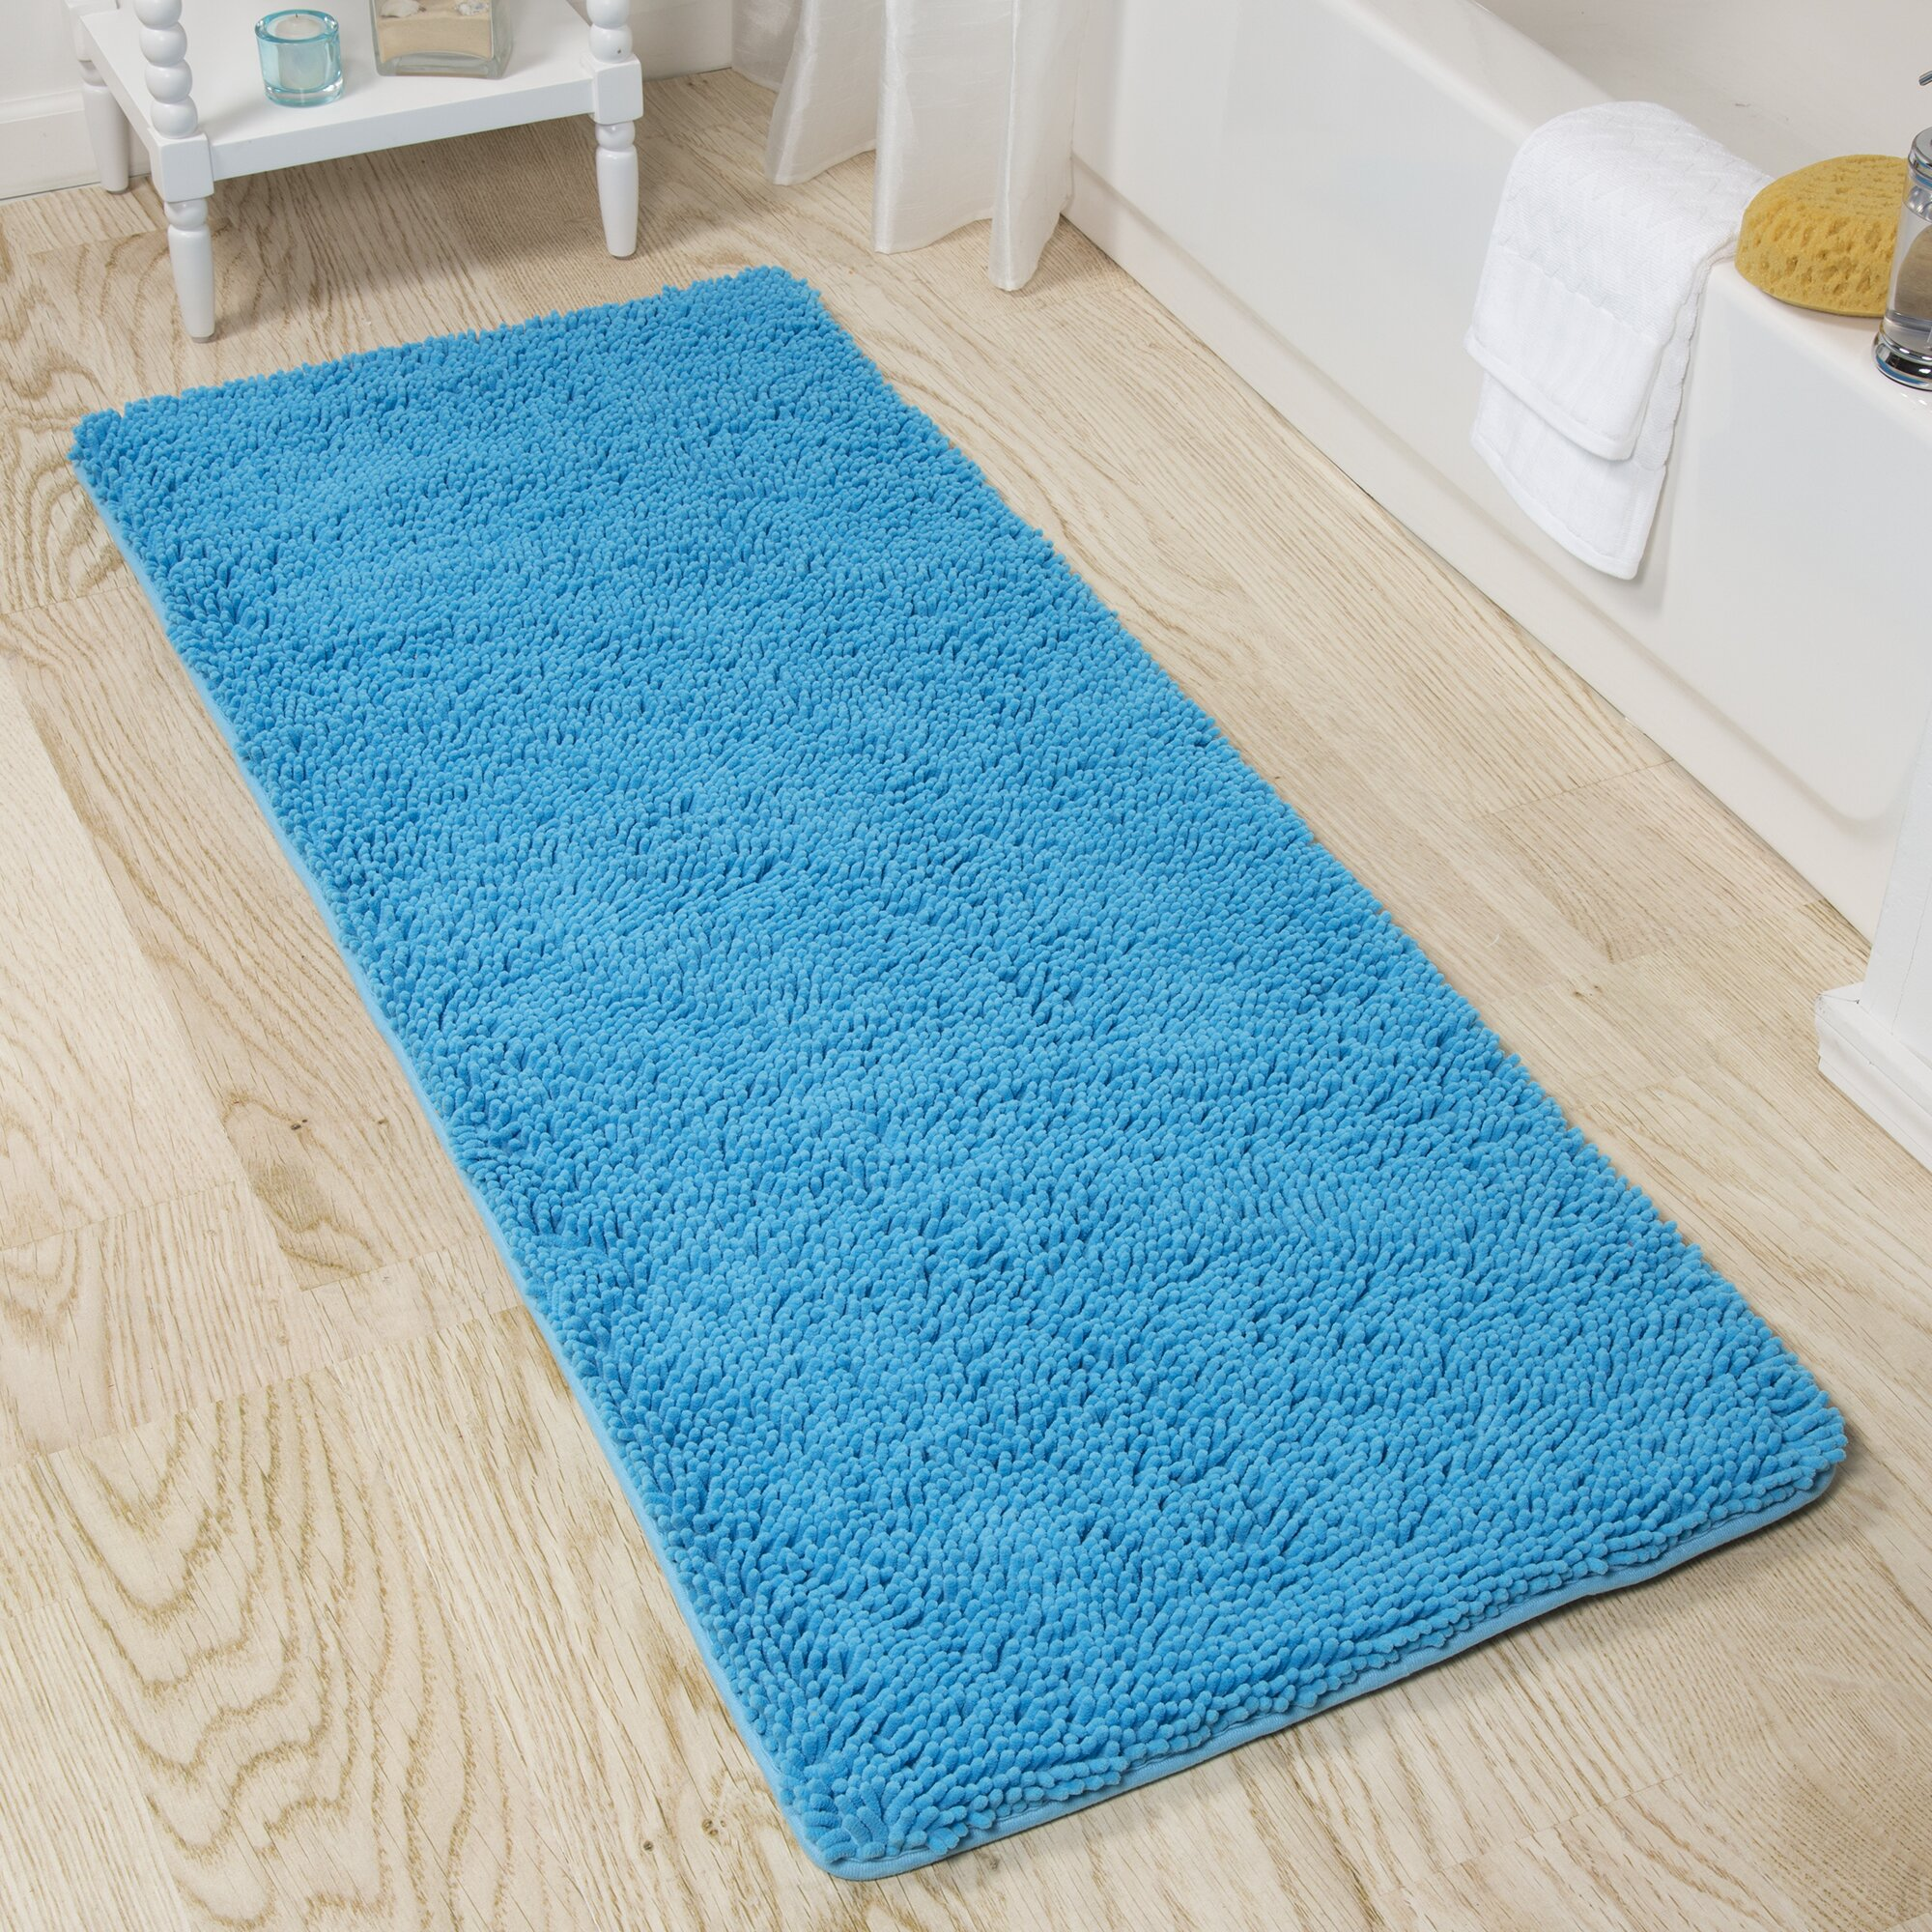 Lavish Home Bath Mat Amp Reviews Wayfair